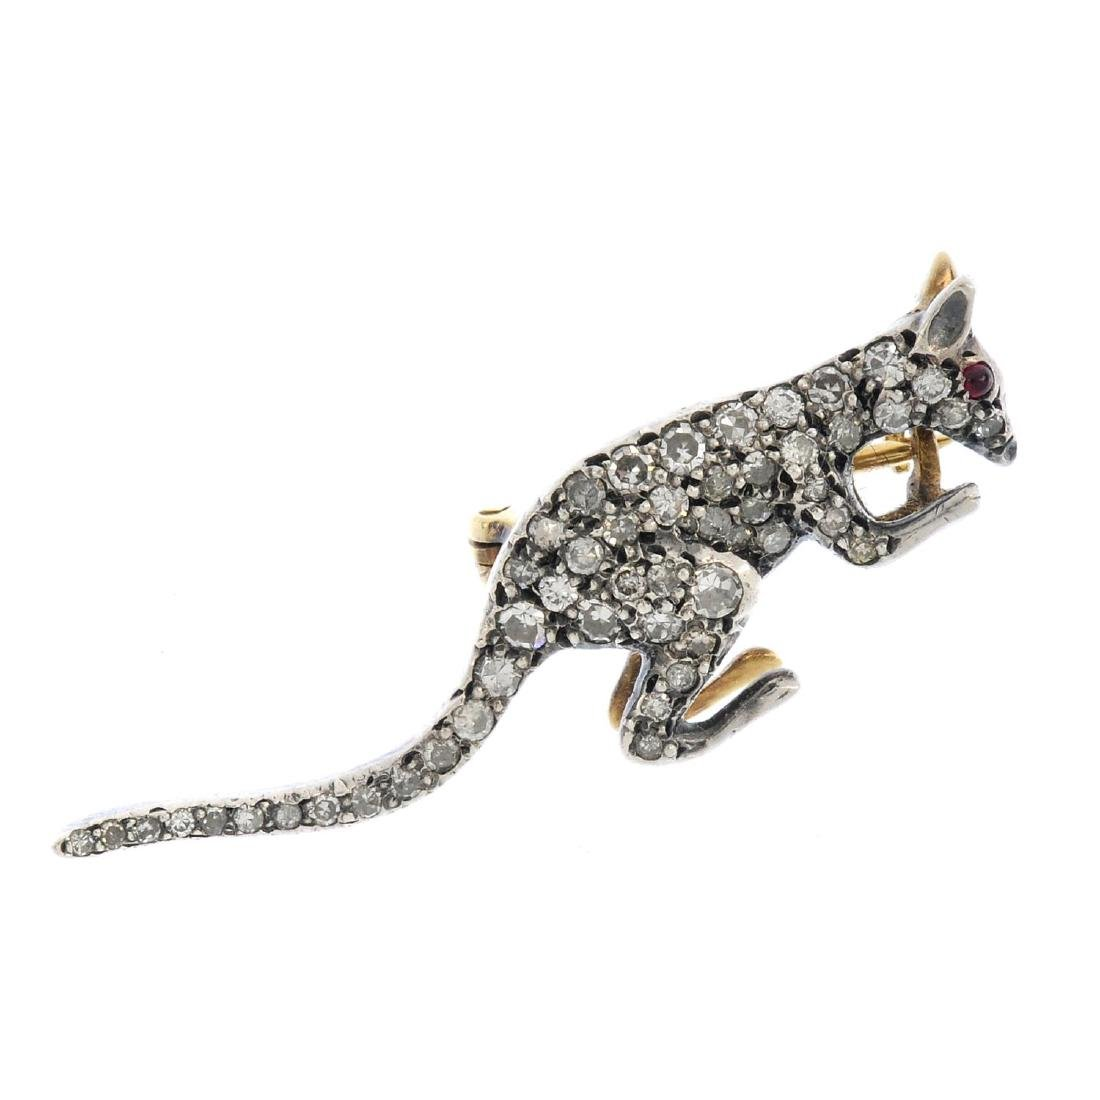 An early 20th century diamond kangaroo brooch. Designed